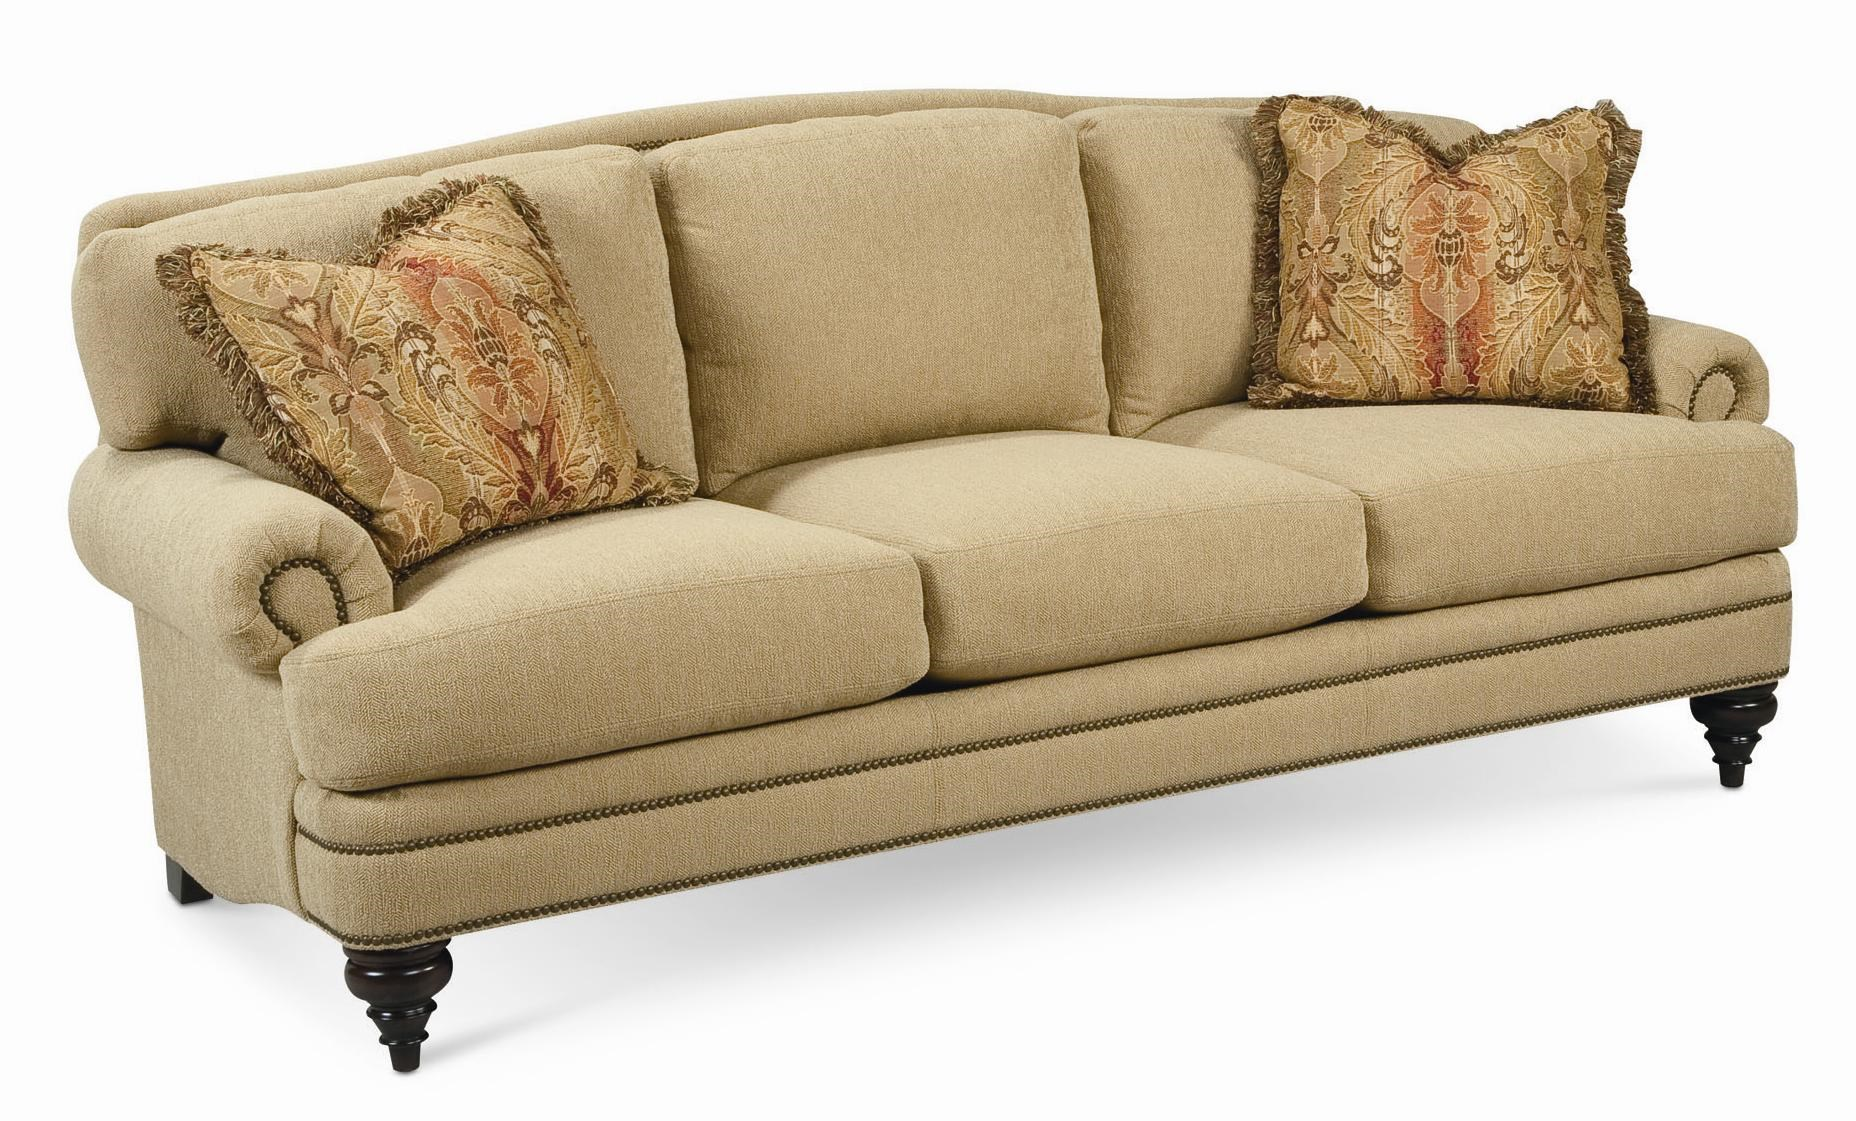 Superieur Thomasville® Special Values   WestportStationary Sofa With Nail Head Trim  ...